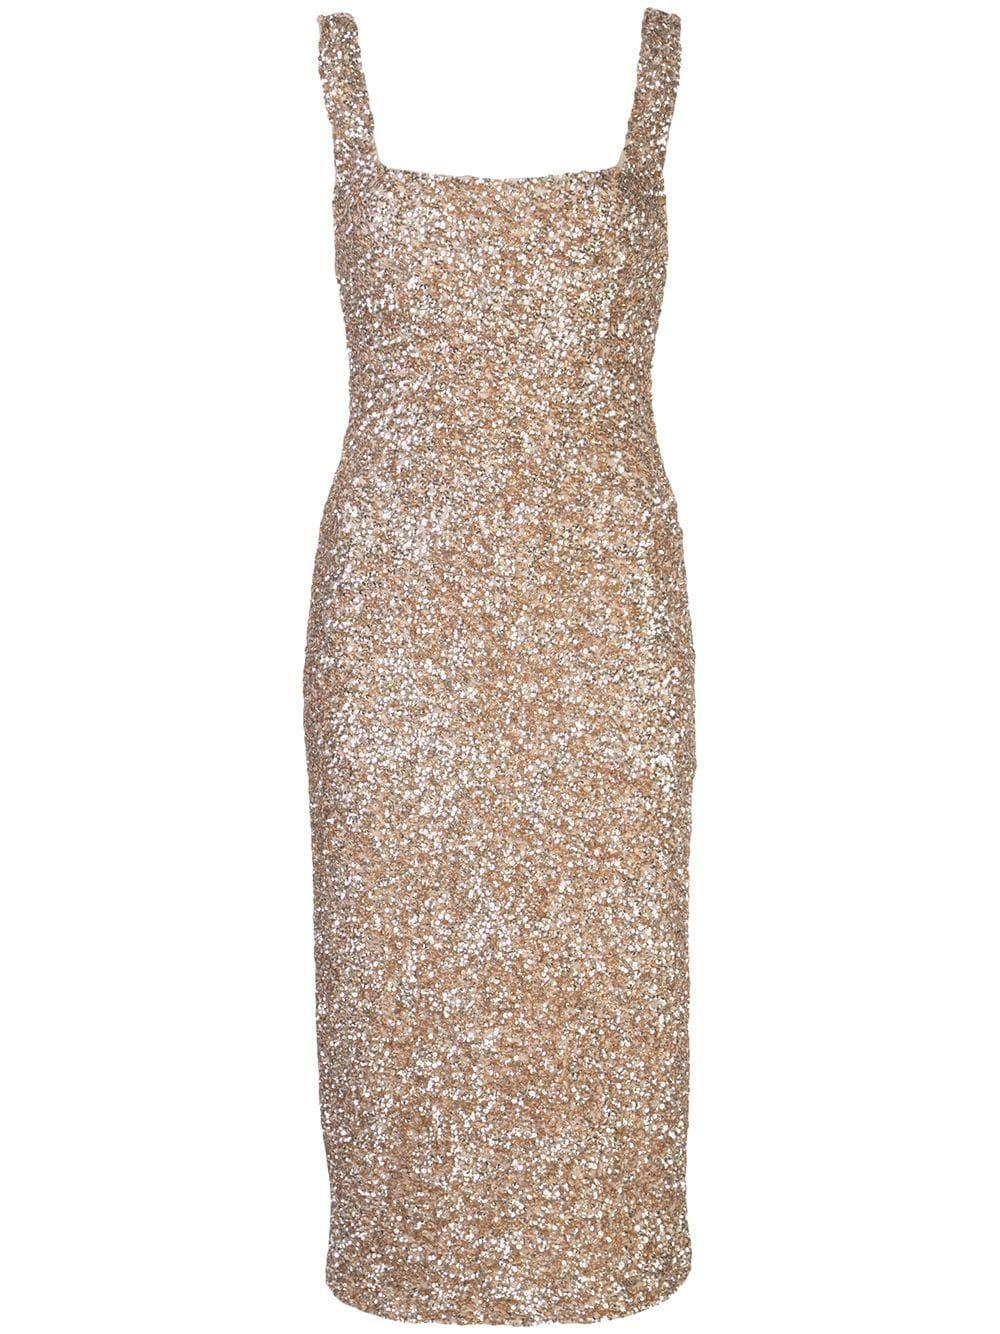 Helen Sequin Fitted Square Neck Dress Item # CC002E65534-C